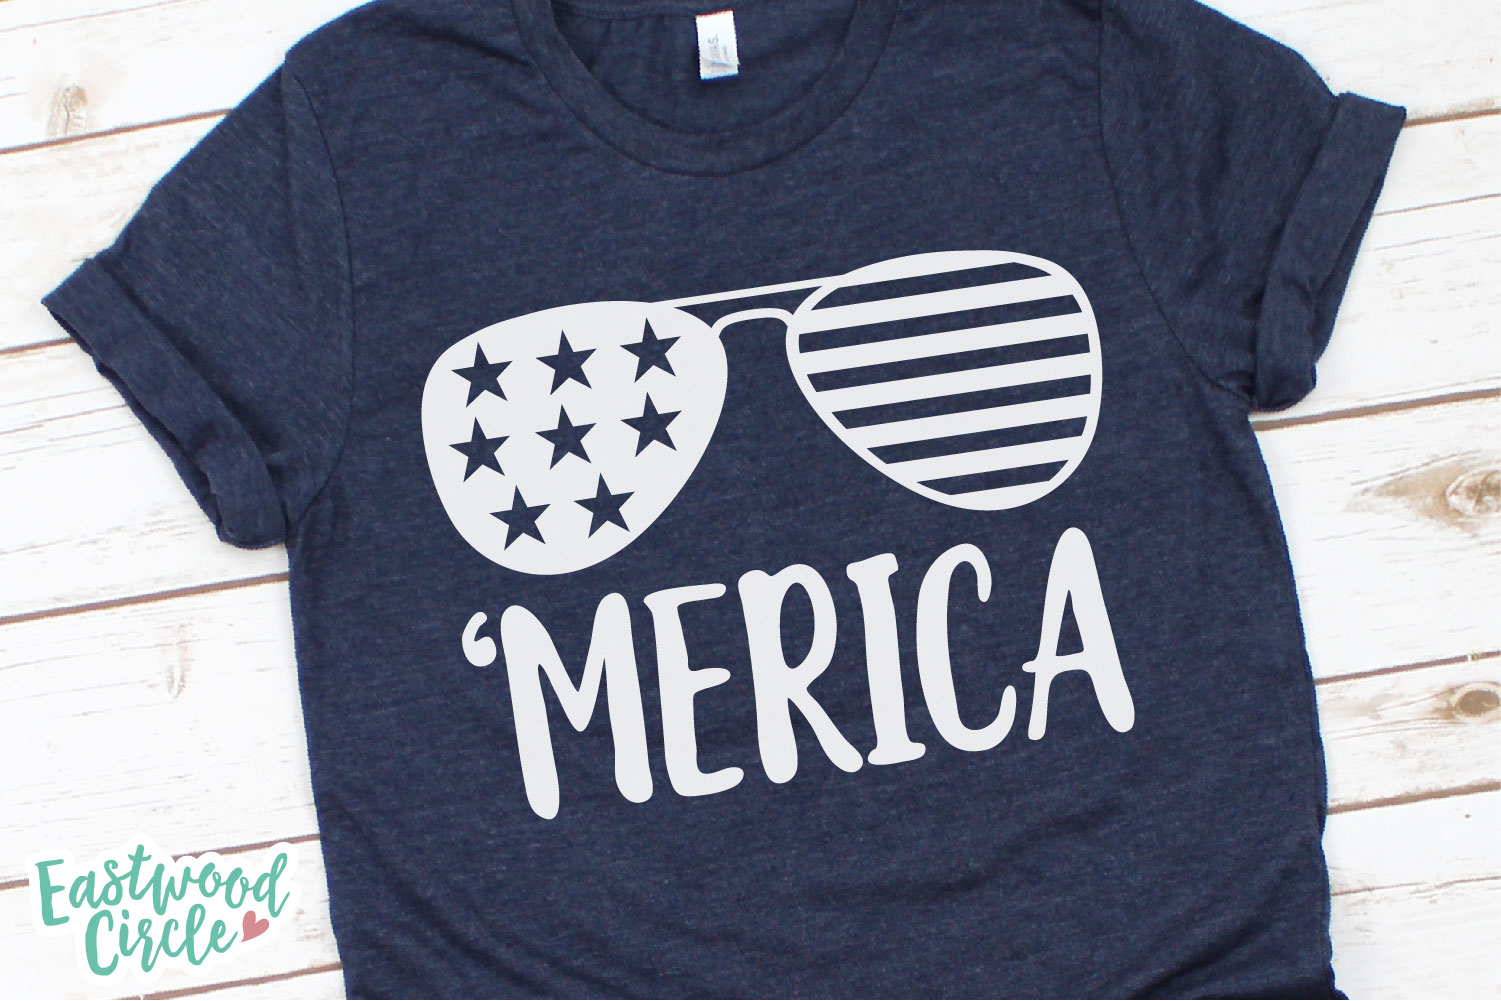 Merica Sunglasses - A 4th of July SVG Cut File example image 2